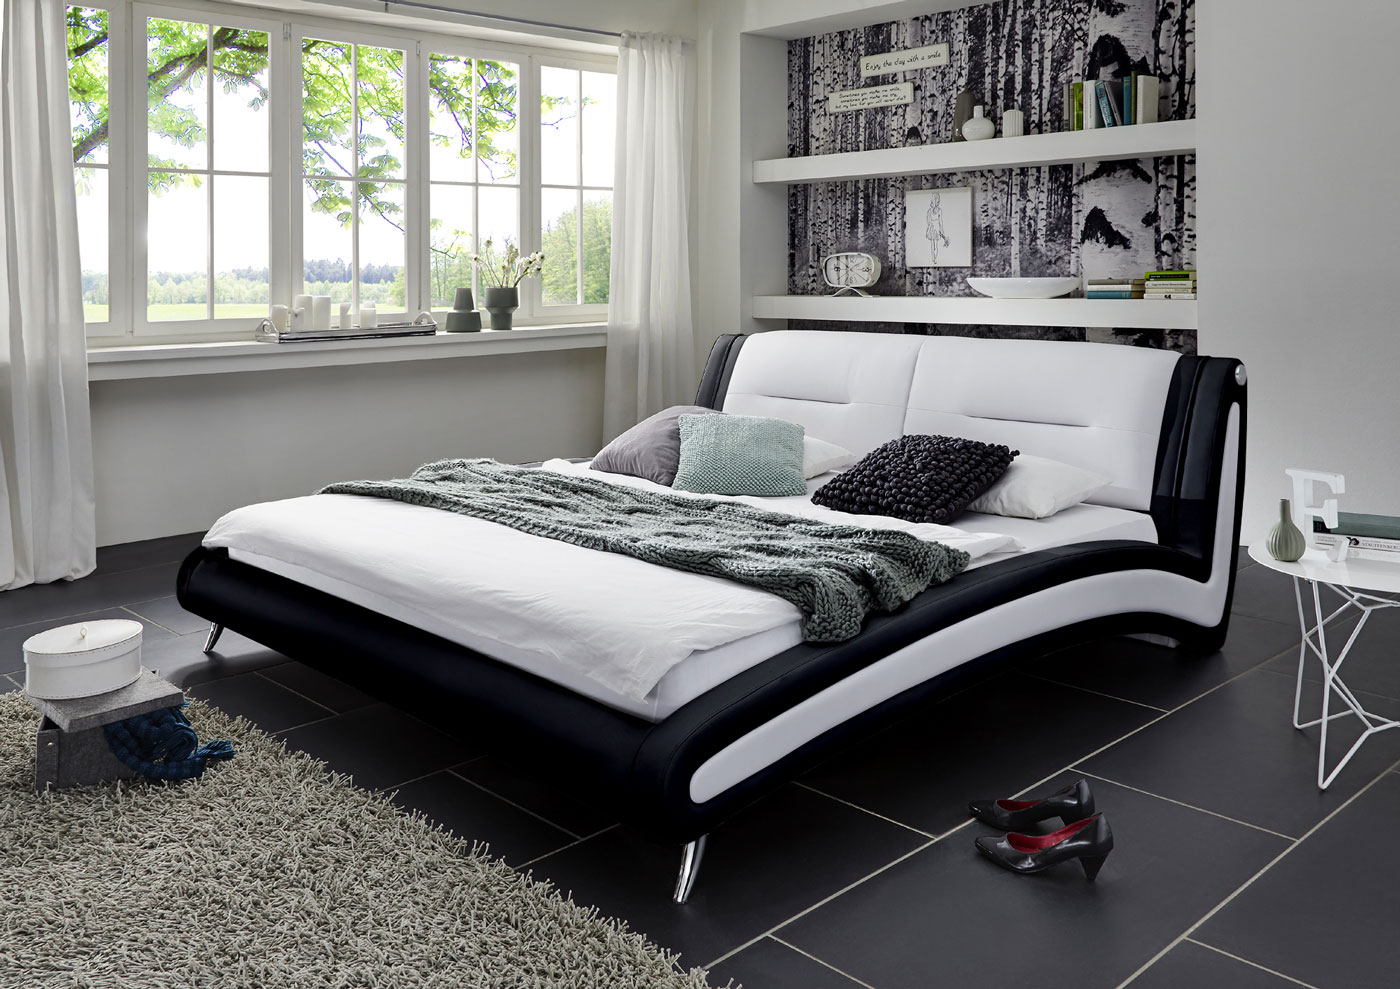 sam polsterbett 200 x 220 cm farbauswahl swing. Black Bedroom Furniture Sets. Home Design Ideas